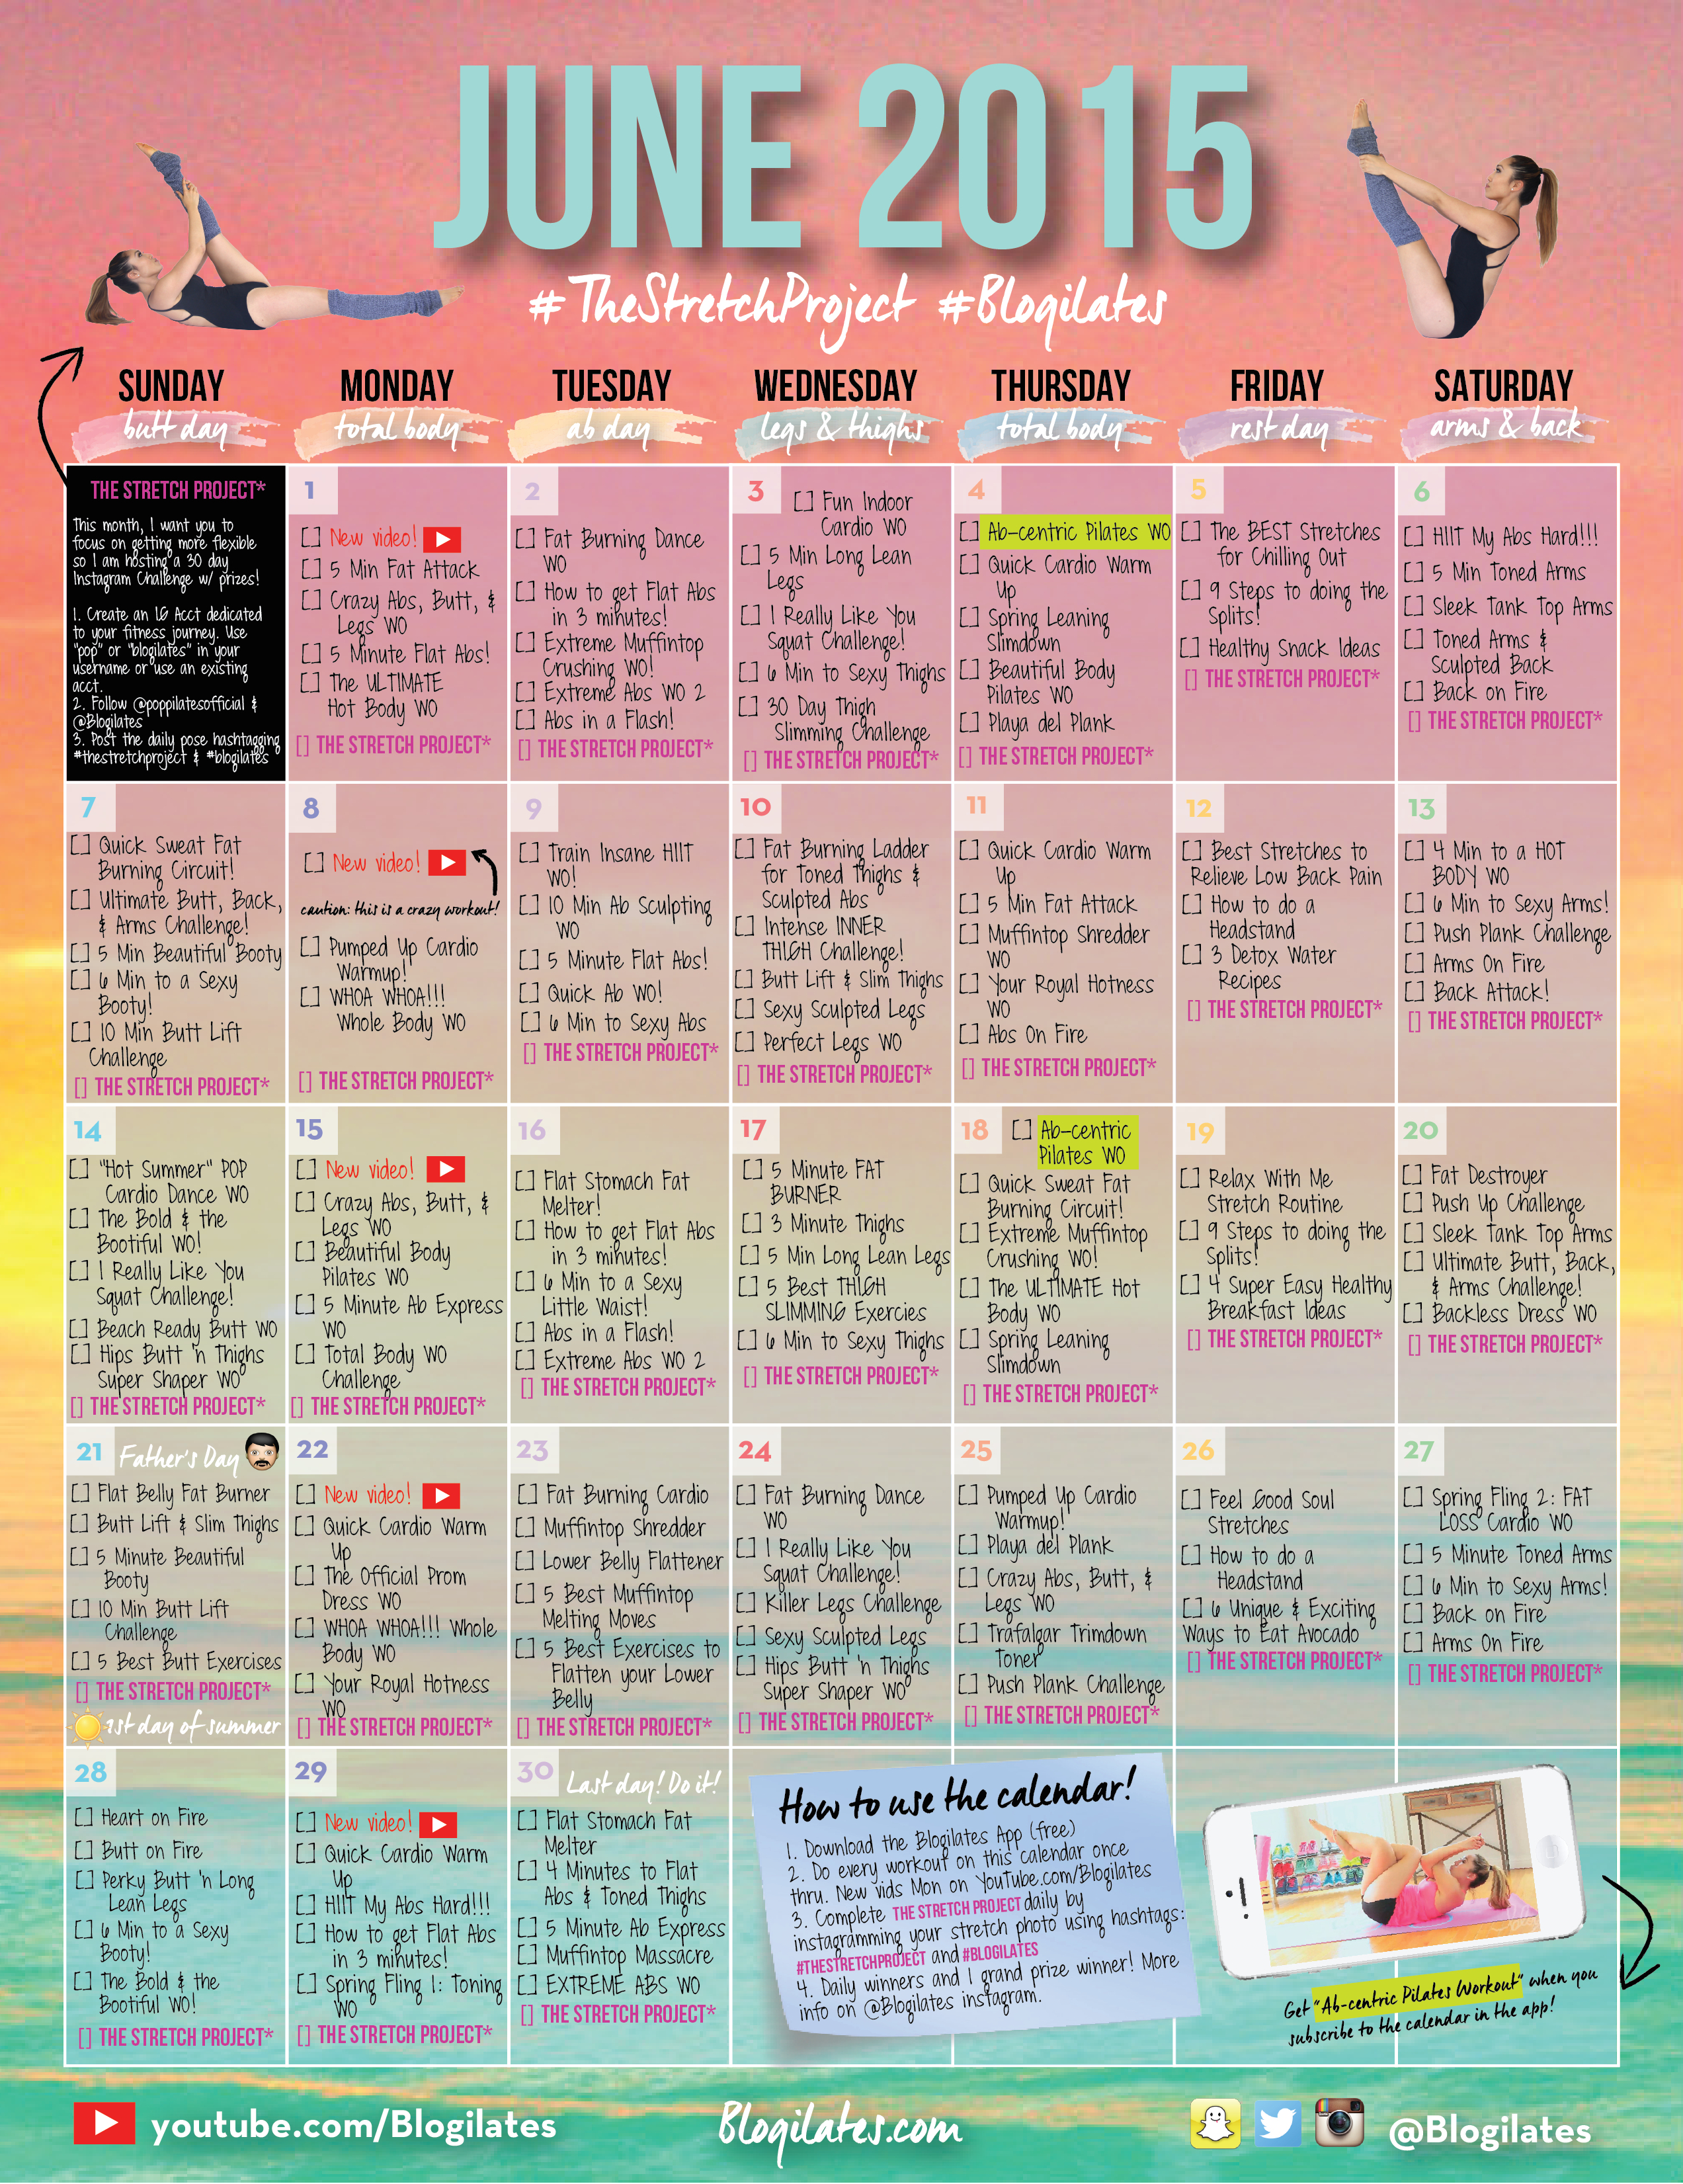 A balanced diet plan to lose weight picture 3